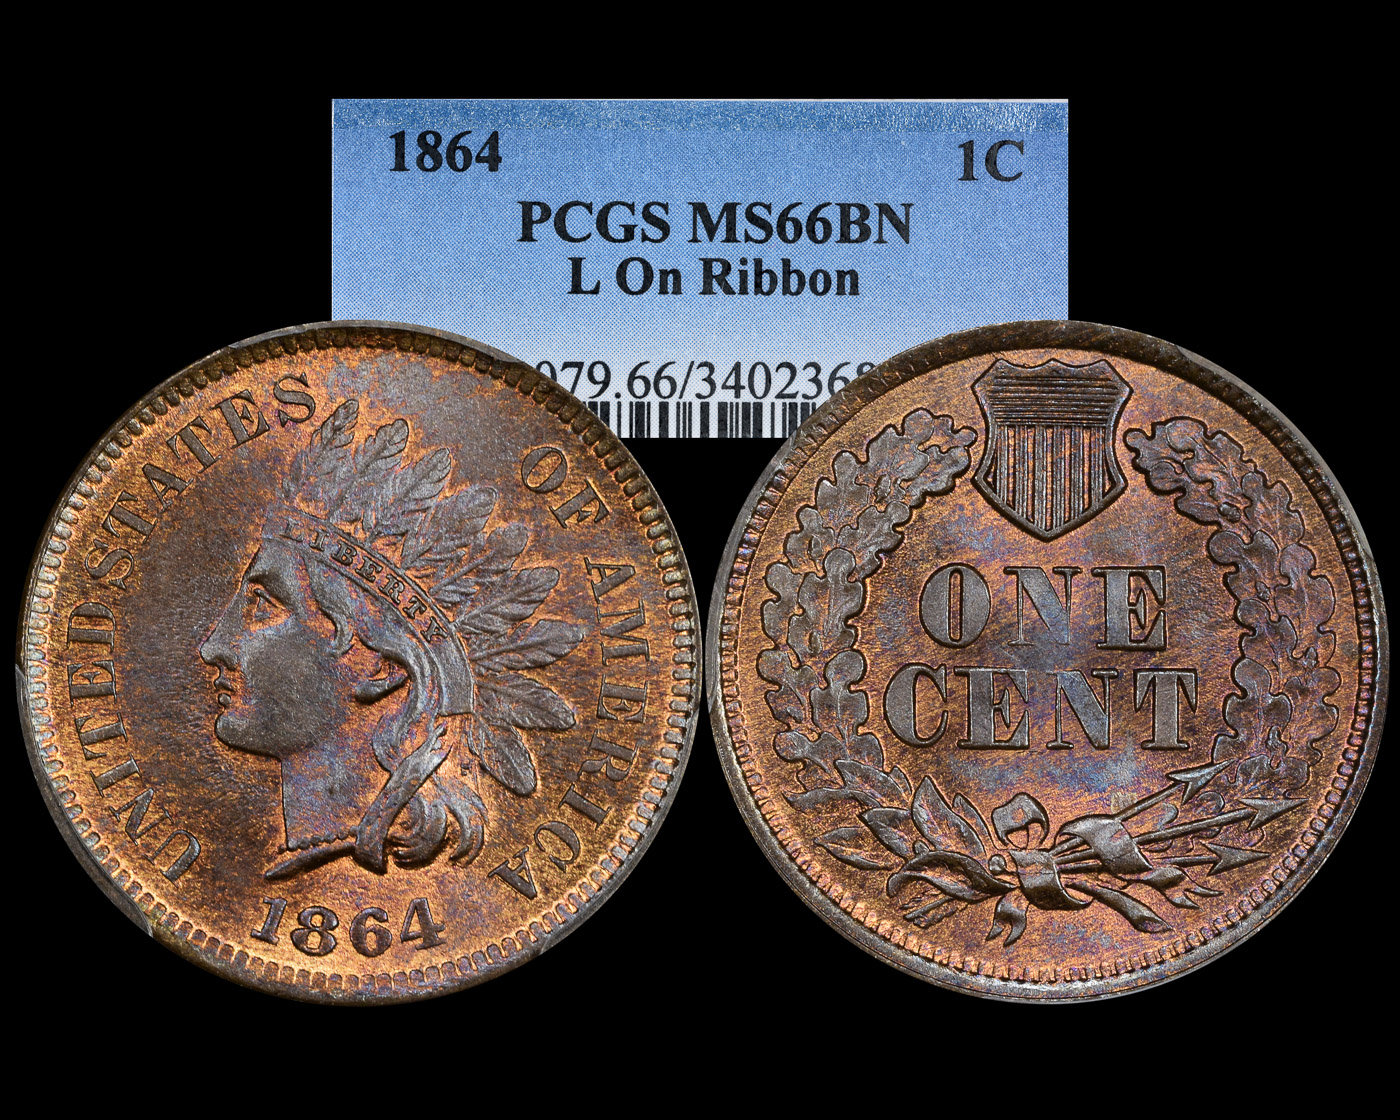 PCGS Las Vegas Show - Upgrade Success or Not? — Collectors